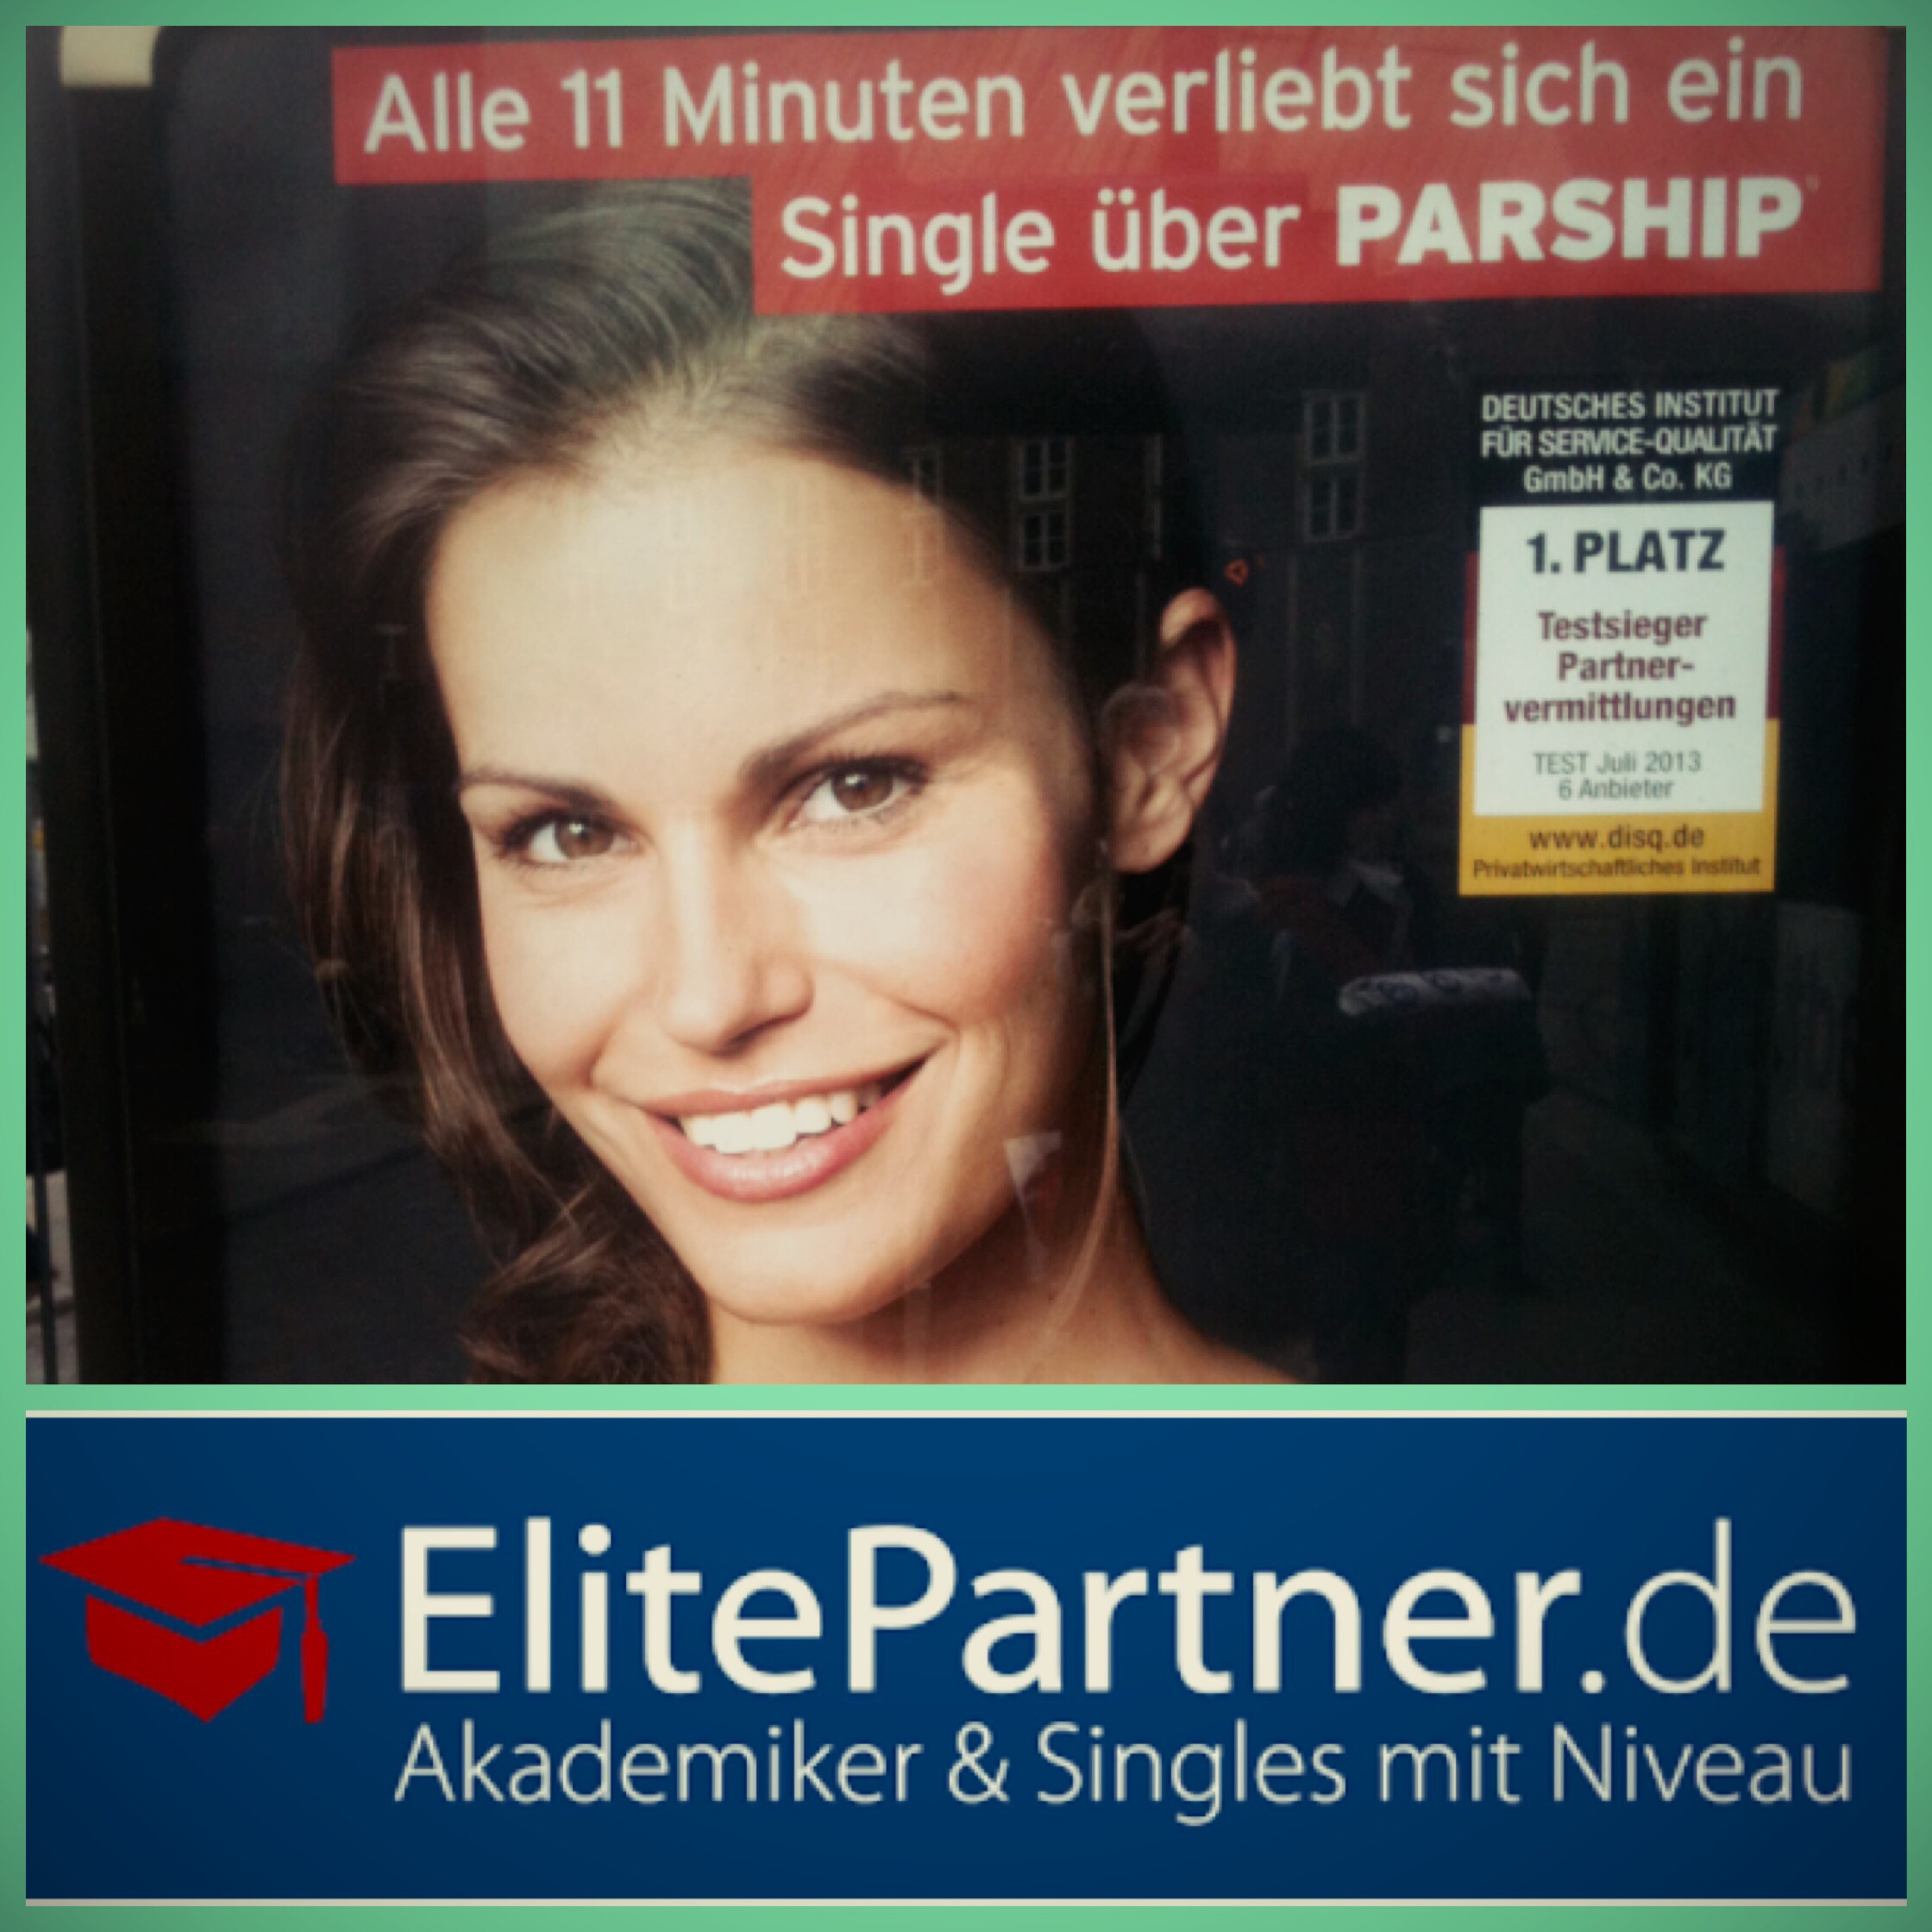 seit Wann gibt ES online dating online dating pre Marines